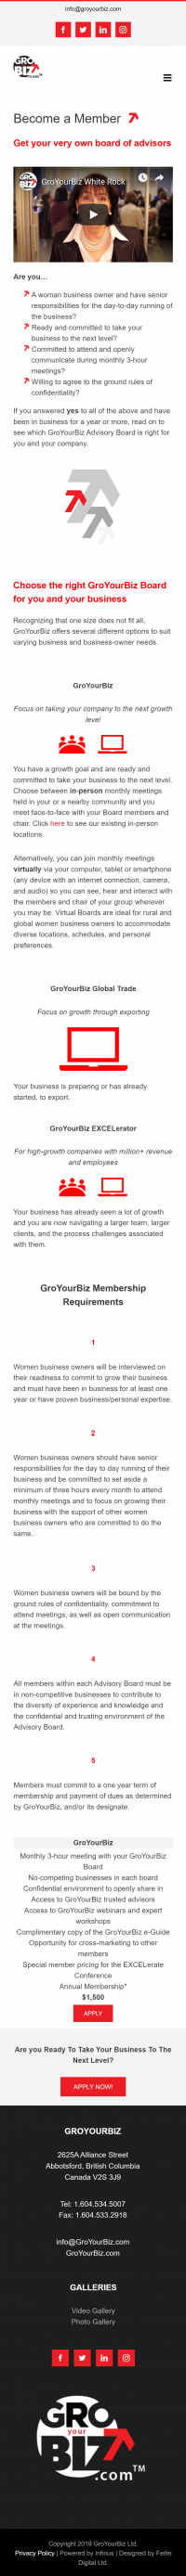 GroYourBiz Become A Member Page | User Interface and Front End Development | Feifei Digital | Monika Szucs